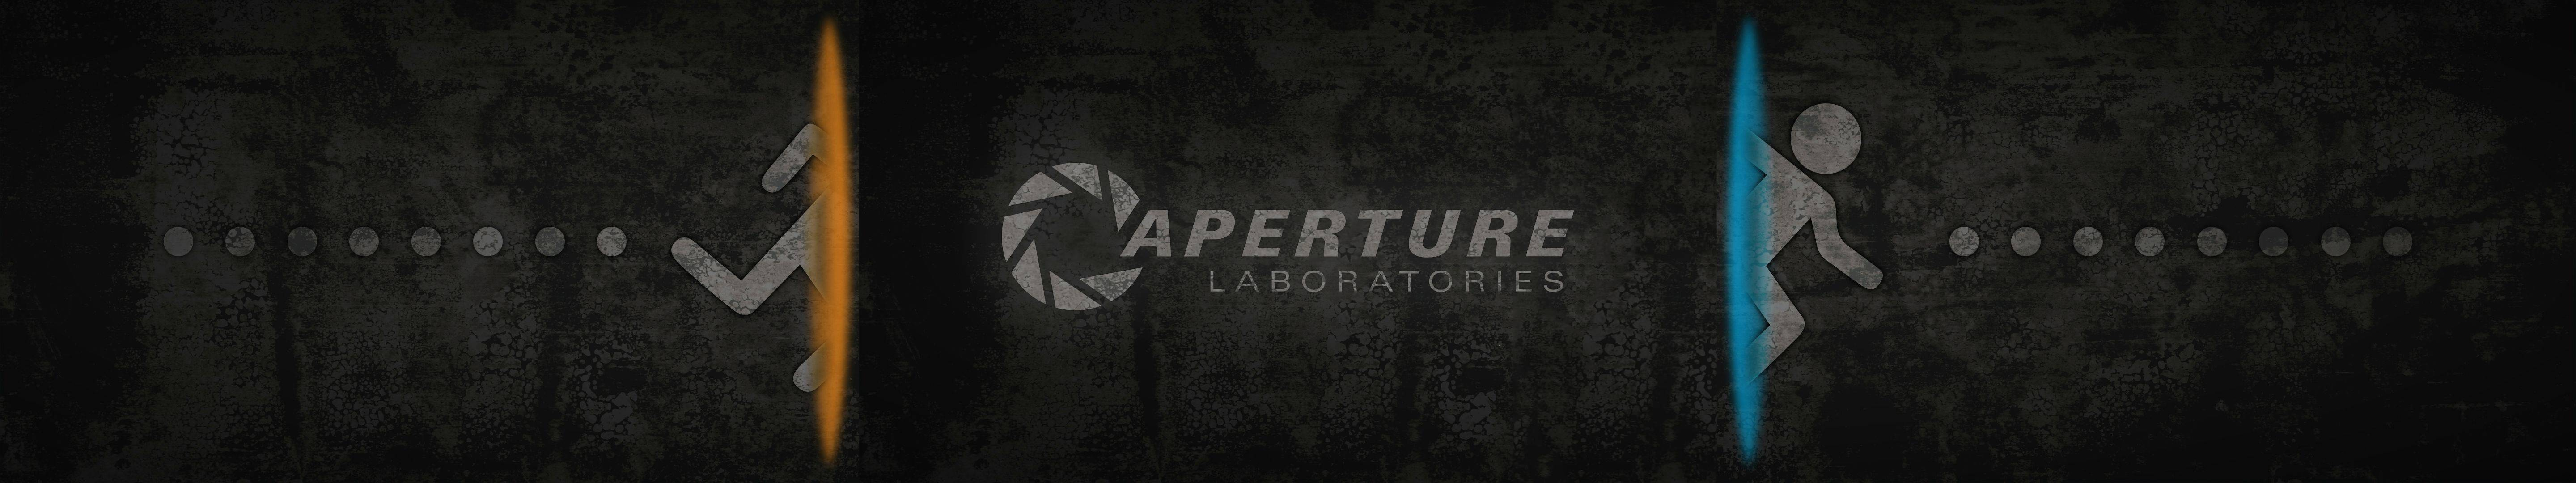 Portal 2 Dual Screen Wallpaper gaming 5760x1080